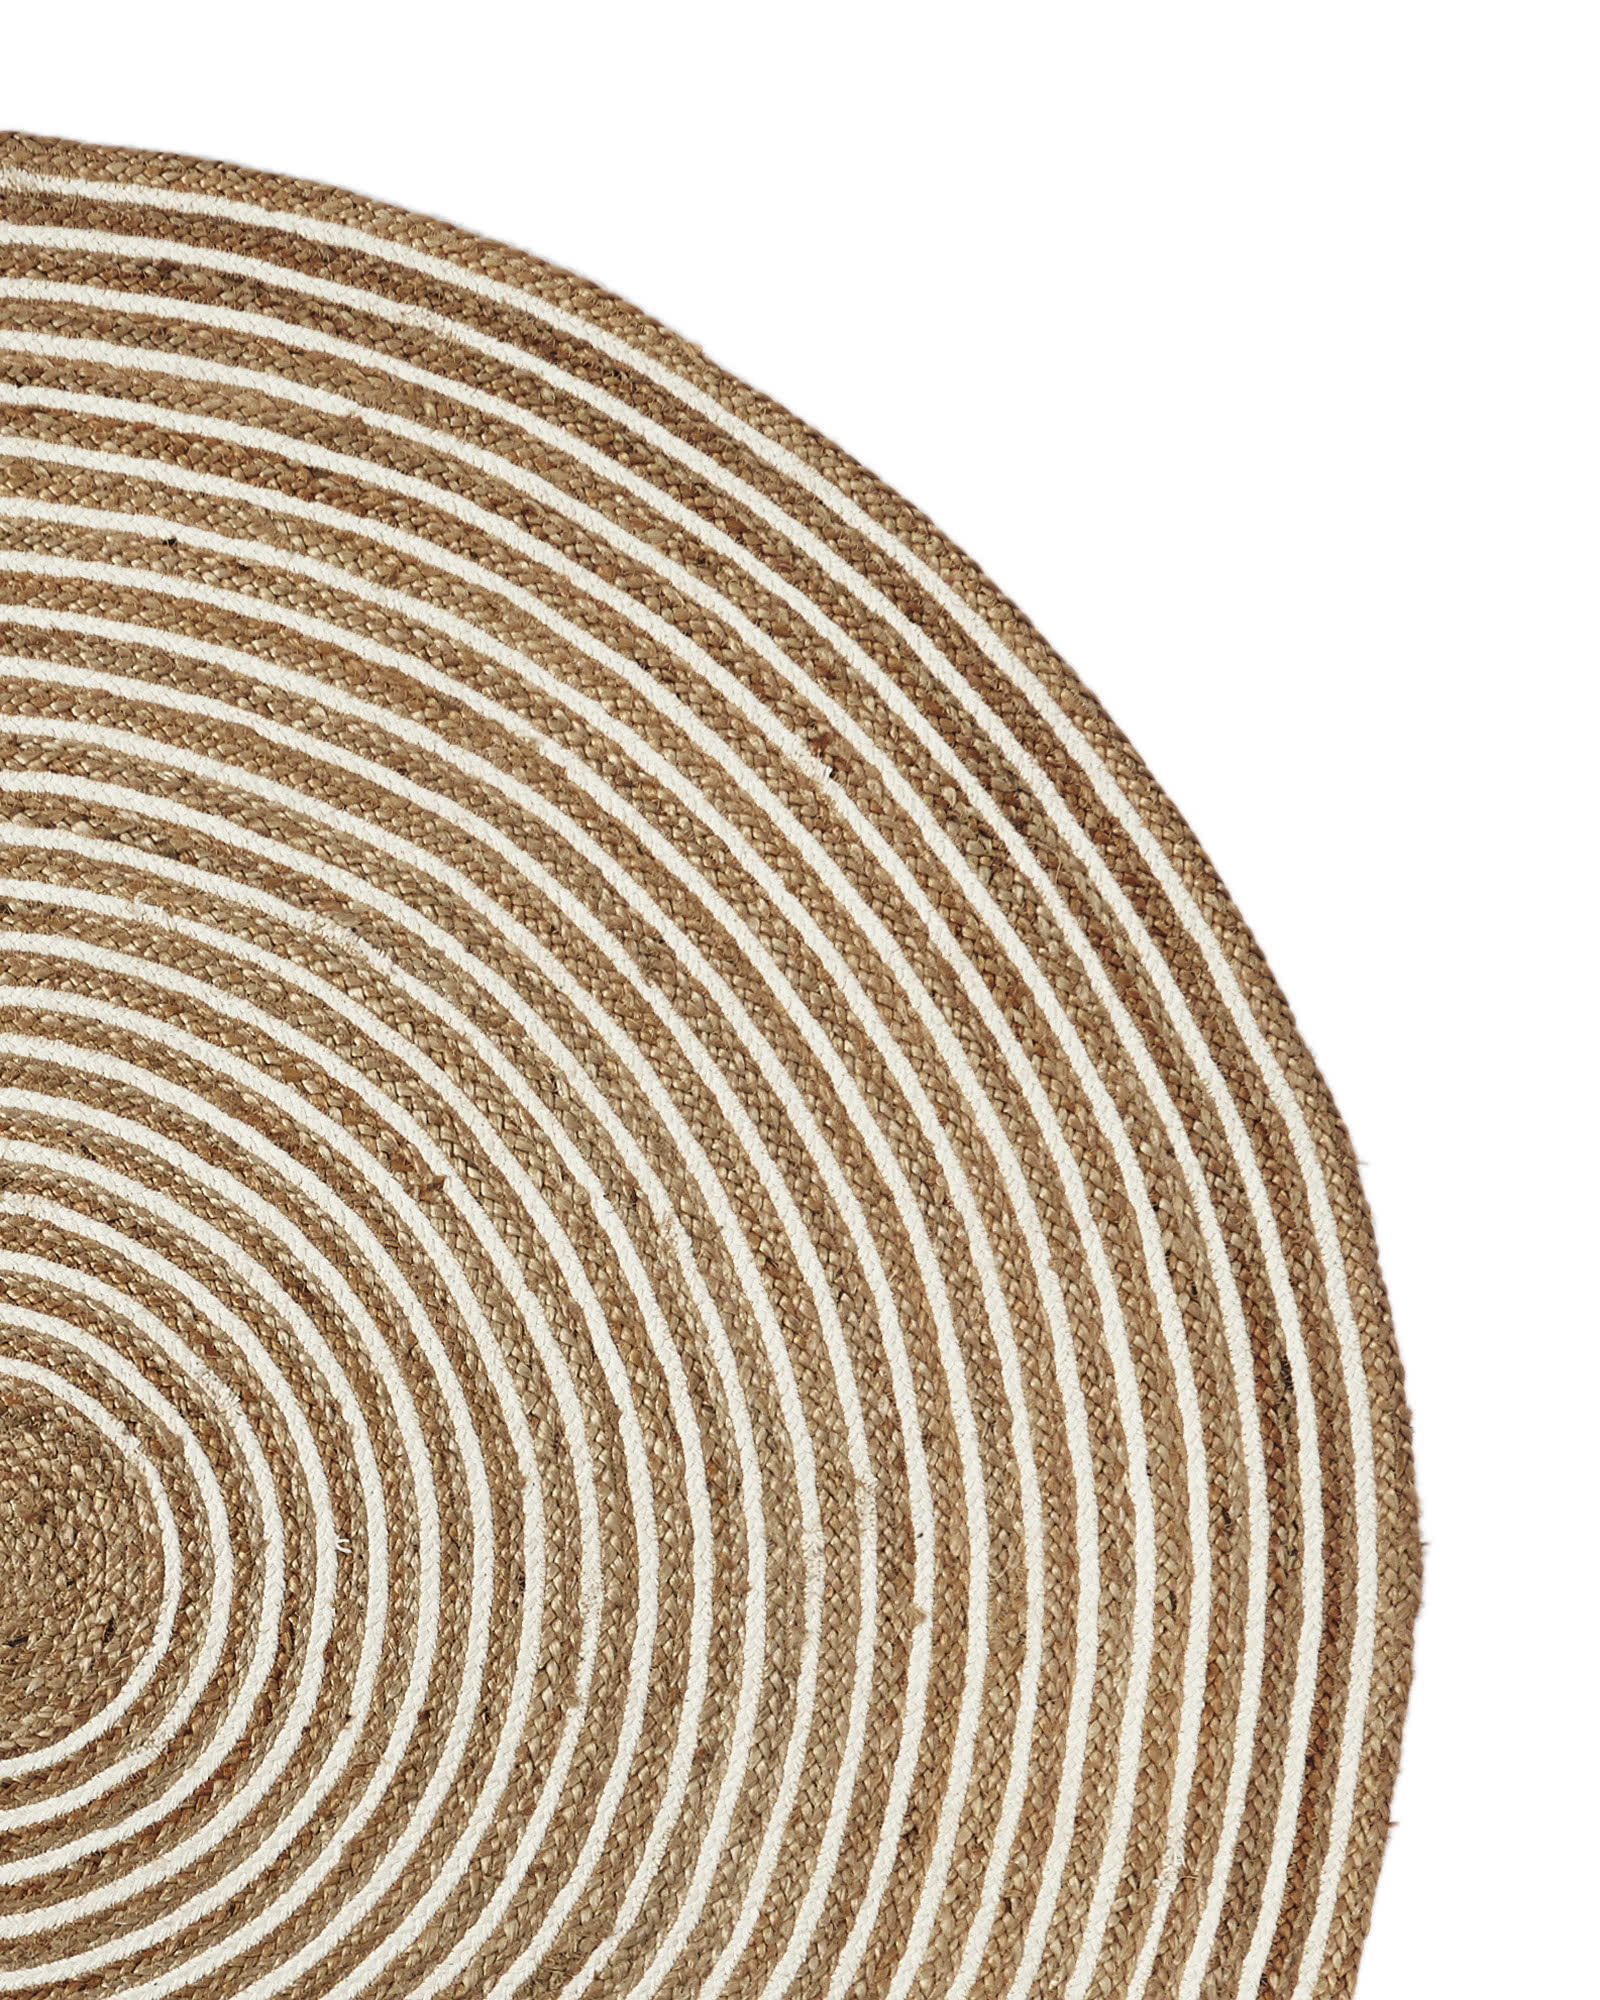 cm handmade jute natural decore rug products yellow and diameter oculus green round